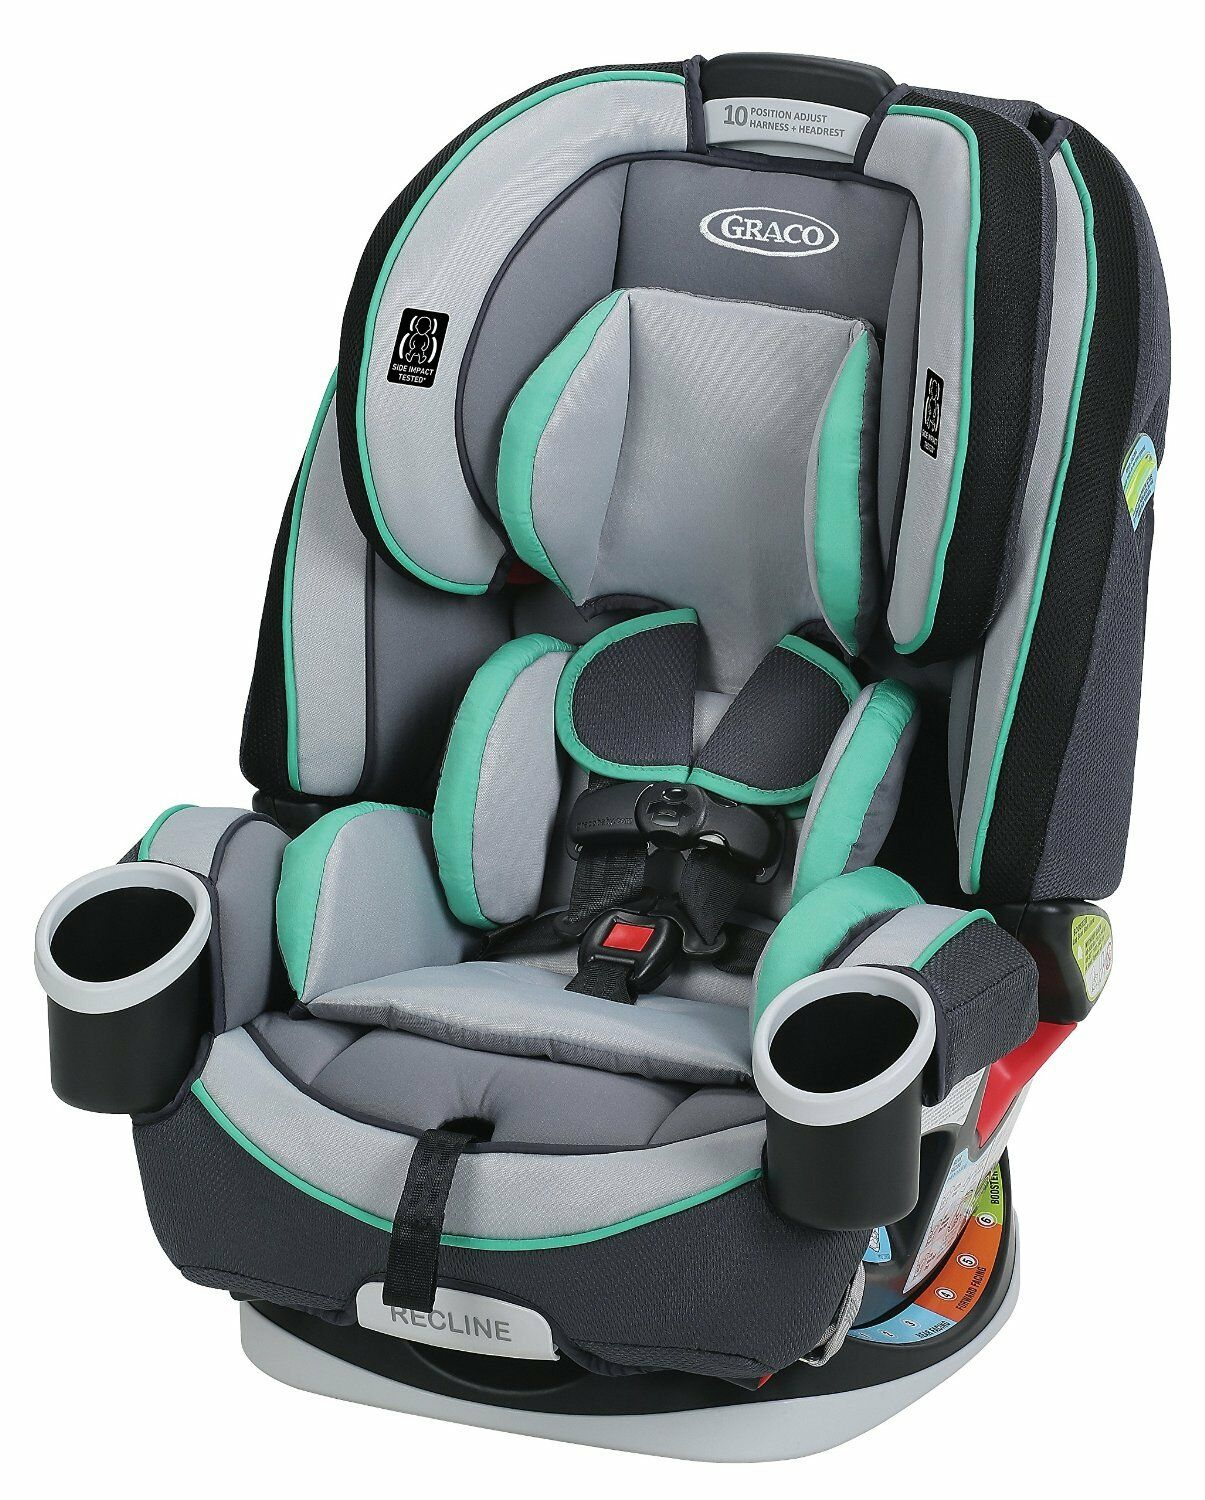 Купить Graco 4Ever - Graco Baby 4Ever All-in-1 Convertible Car Seat Infant Child Booster Basin NEW